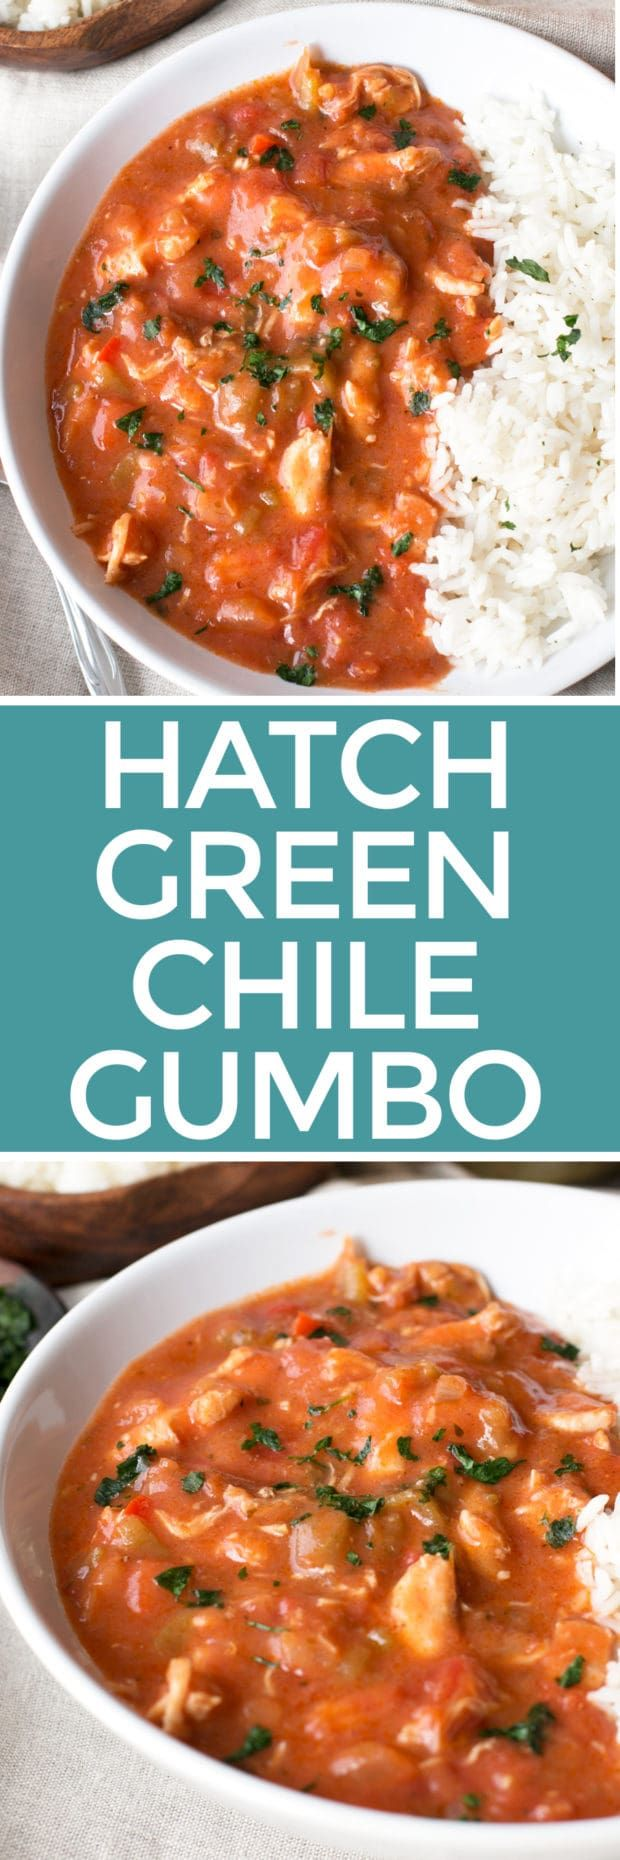 Hatch Green Chile Gumbo - Cake 'n Knife